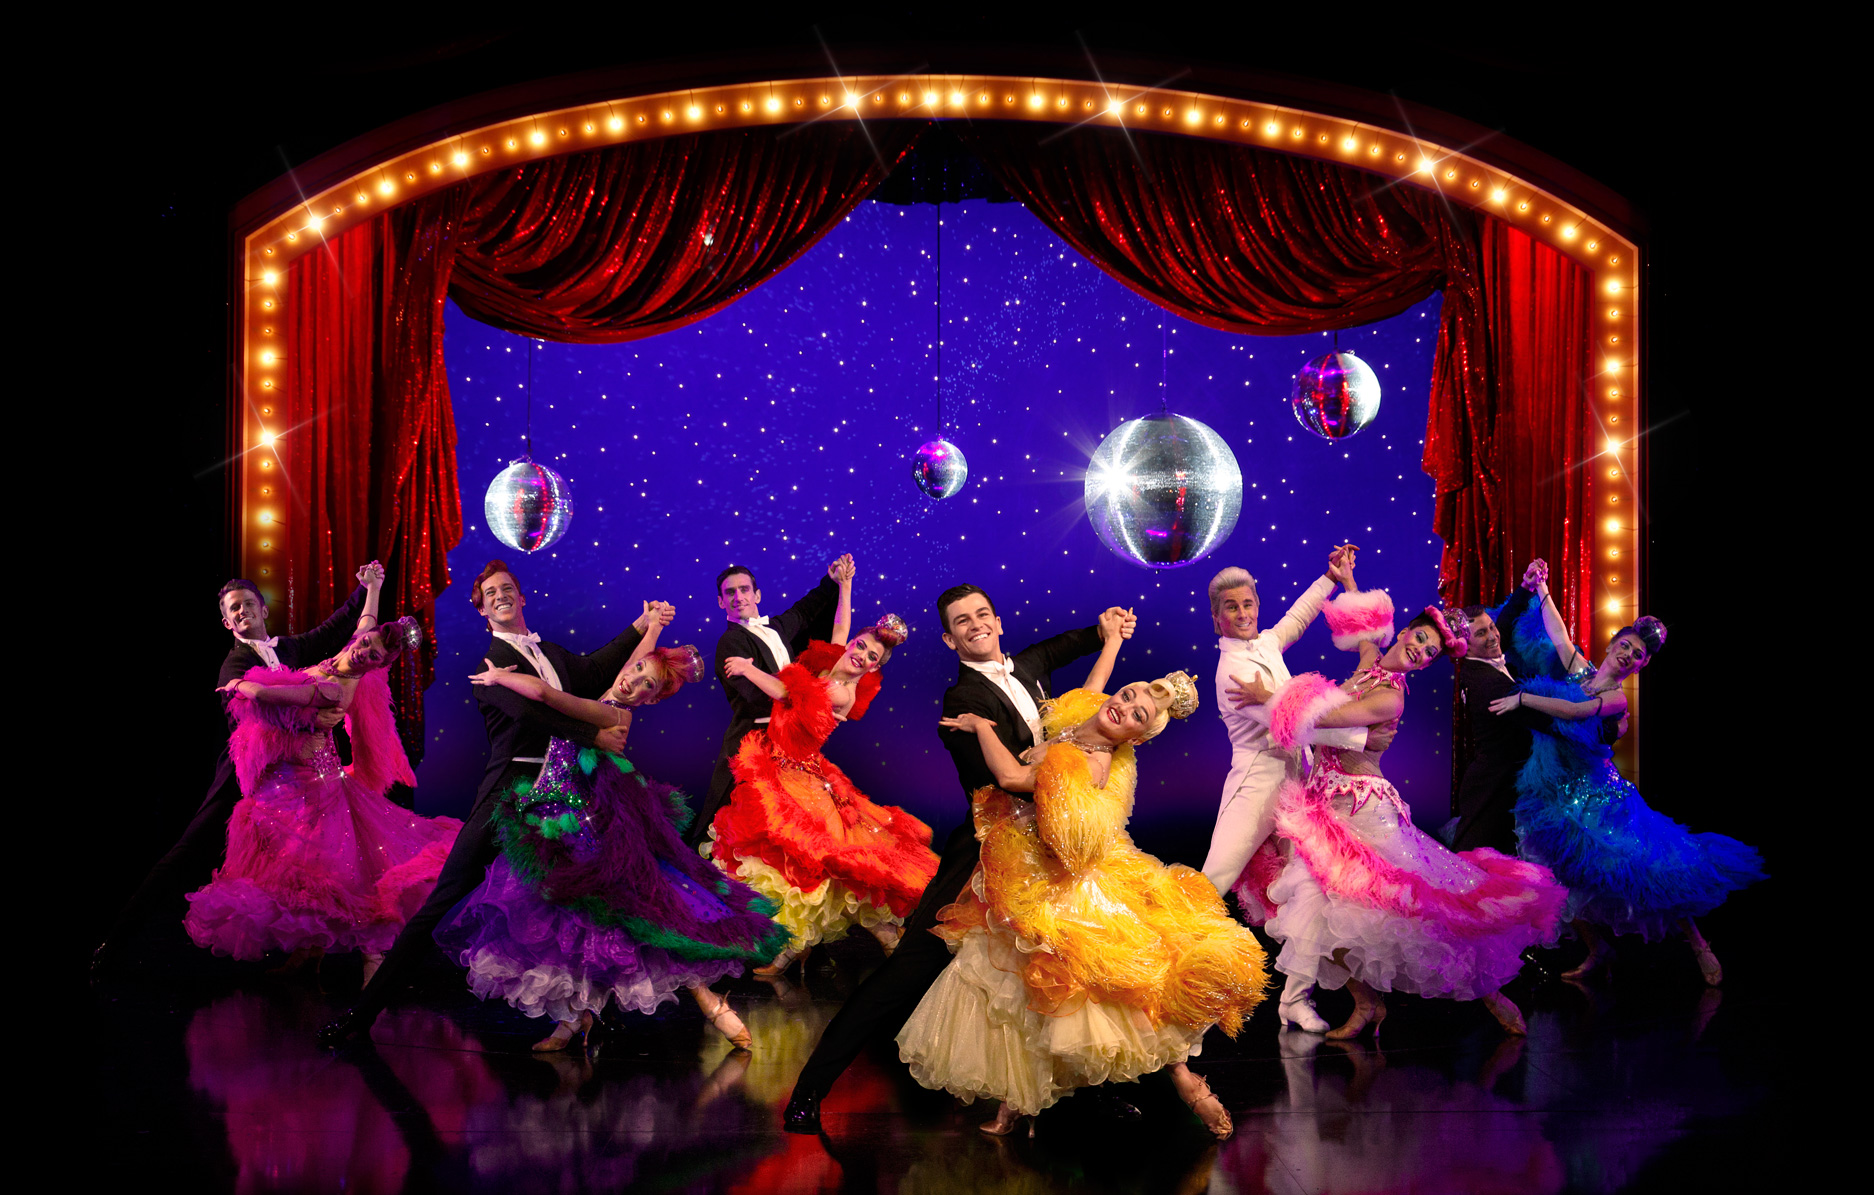 strictyly ballroom Strictly ballroom - a top ballroom dancer pairs with a plain, left-footed local girl when his maverick style earns him the disdain of his more conventionally-minded.